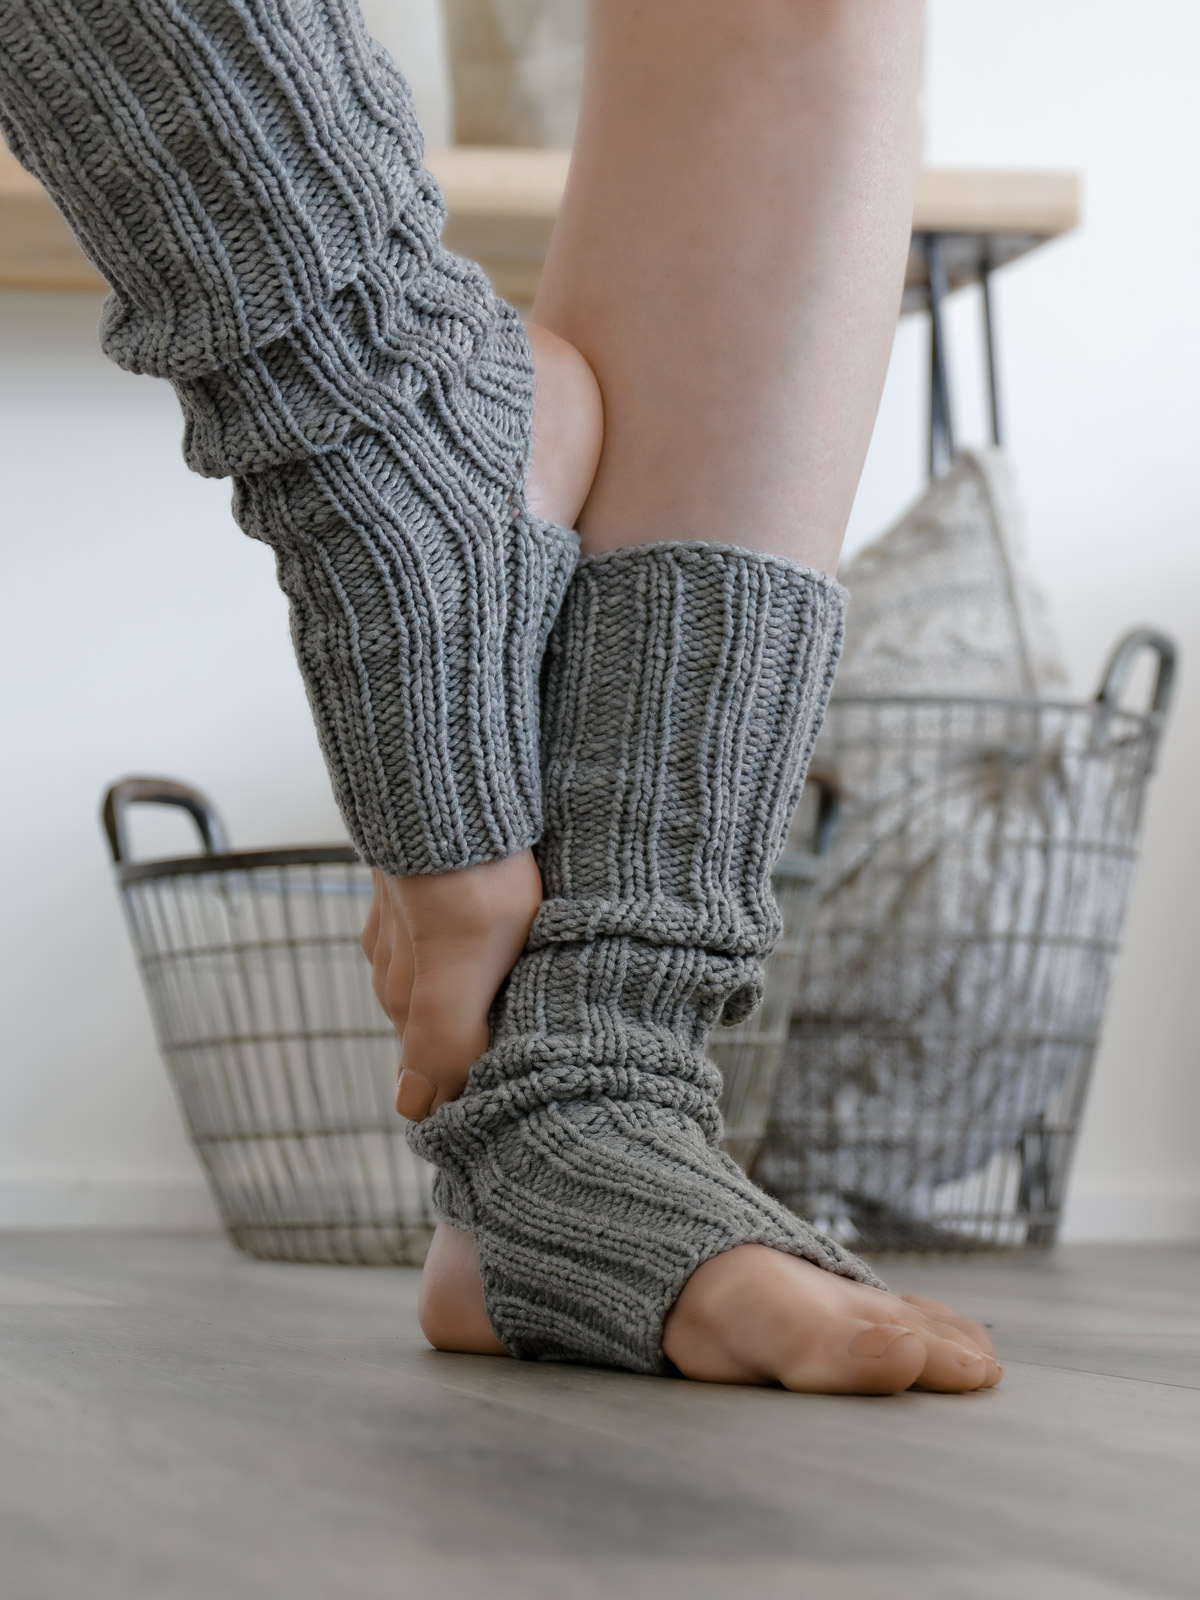 DIY | Yogasocken stricken - mxliving